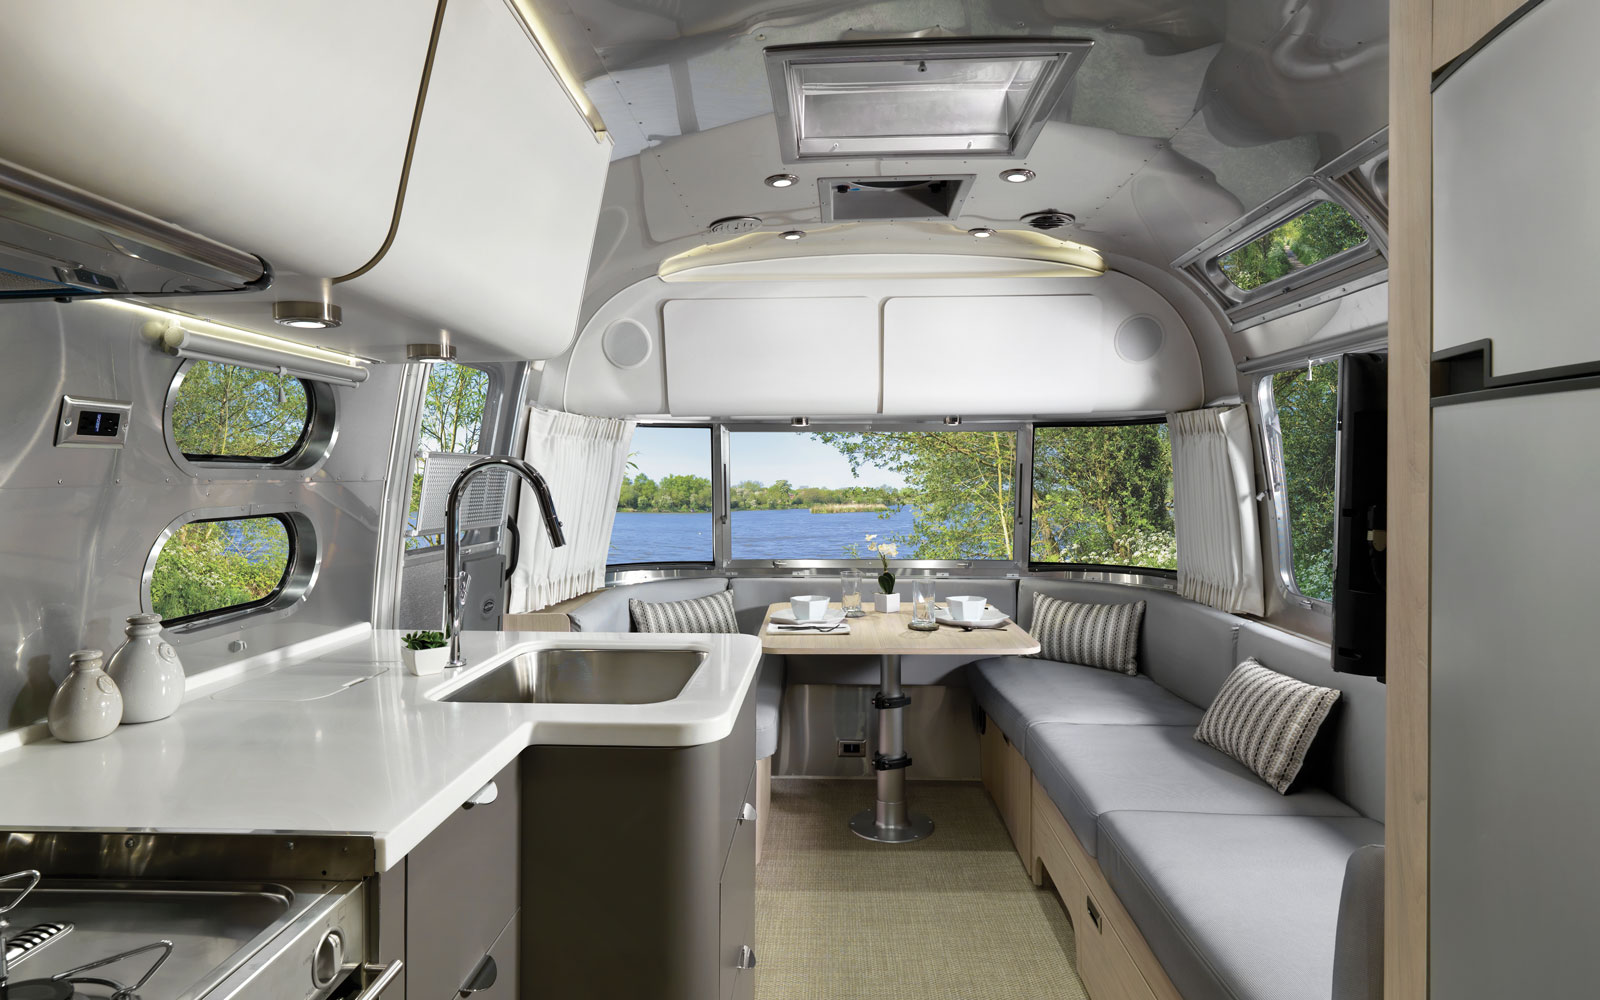 How Mobile Inspection Apps Help Airstream Improve Quality and Cut Costs